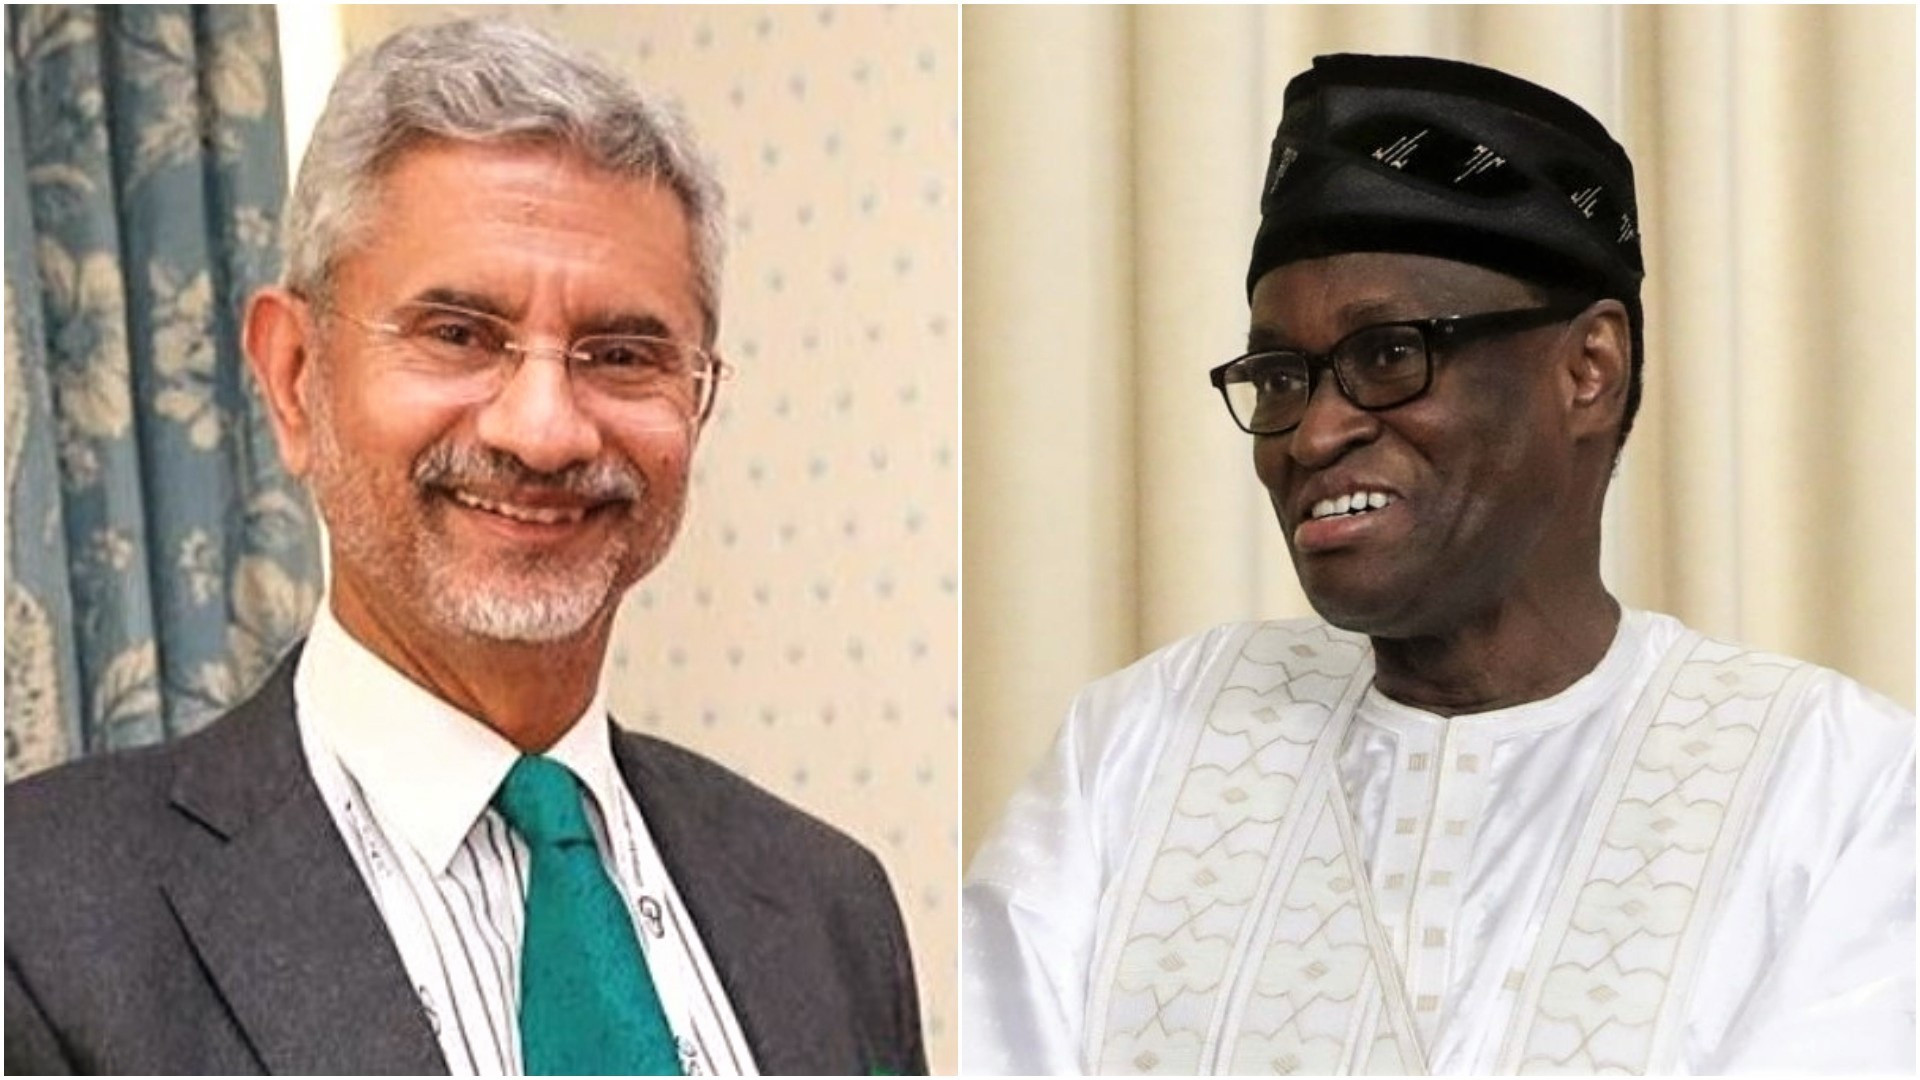 External Affairs Minister of India Dr. S. Jaishankar and Foreign Minister of Mali Mr. Tiébilé Dramé held telephonic conversation to discuss various aspects of bilateral relations, 25 April 2020.